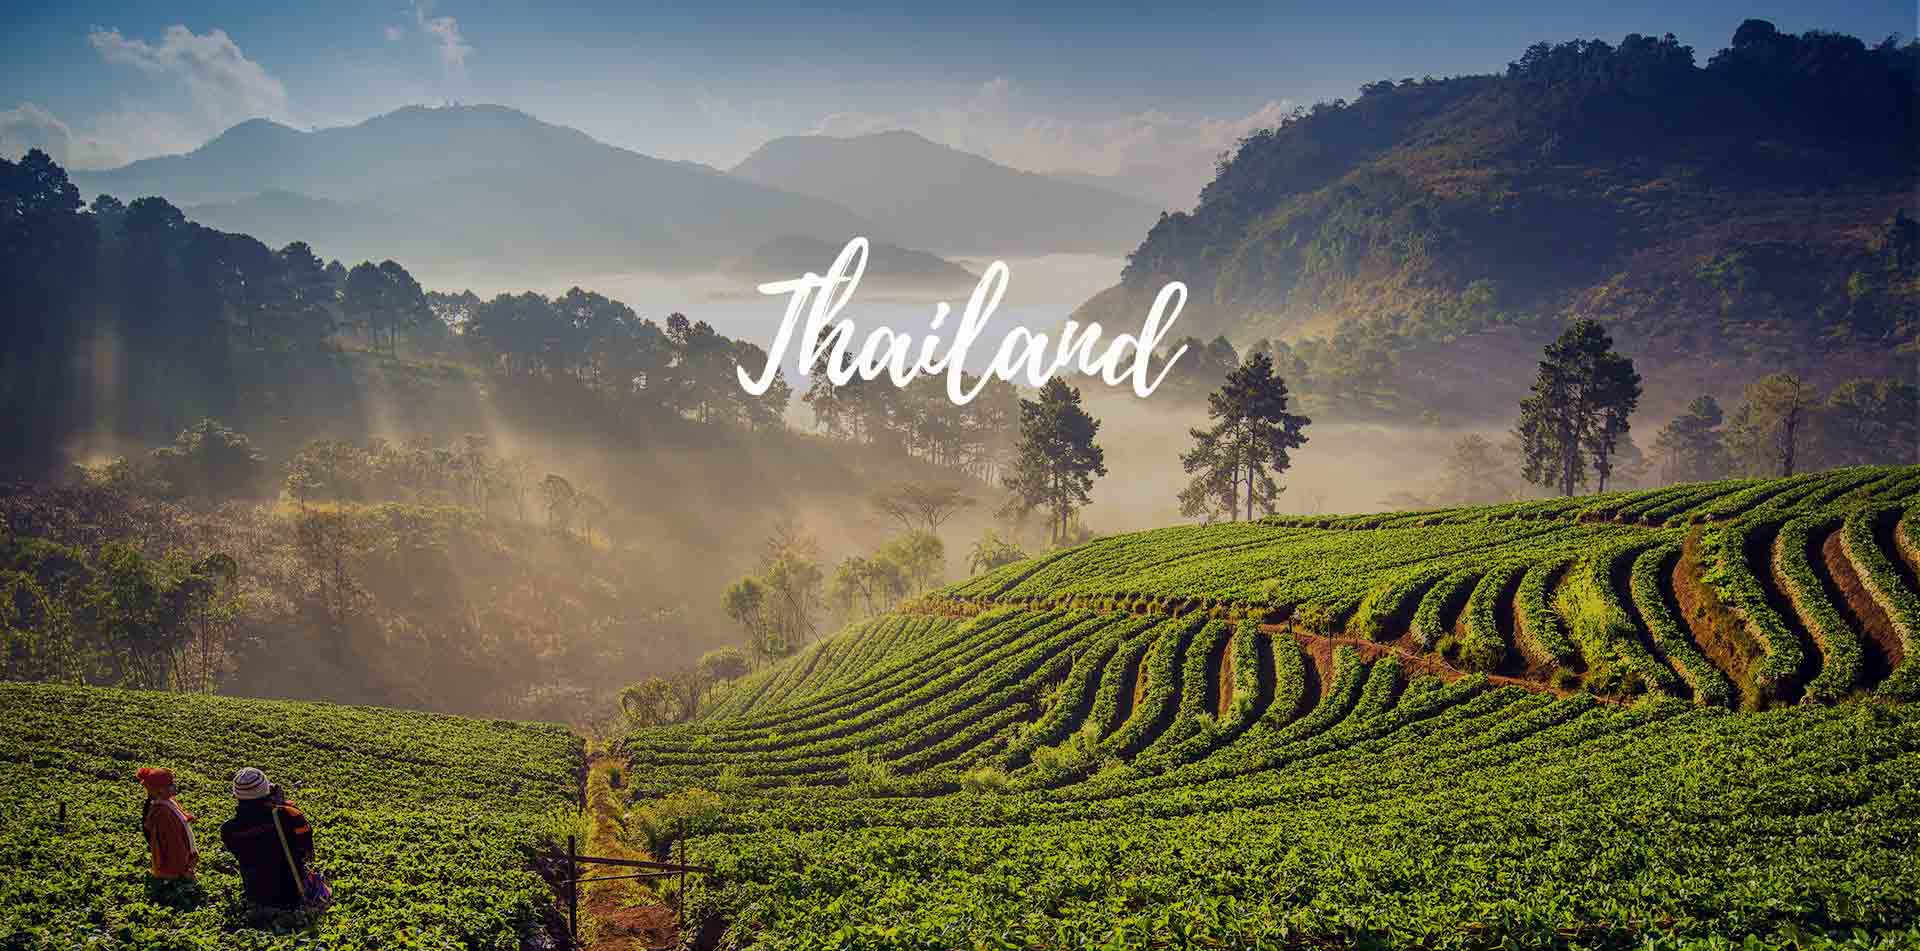 Asia Thailand rolling hills of a green tea leaf plantation - luxury vacation destinations